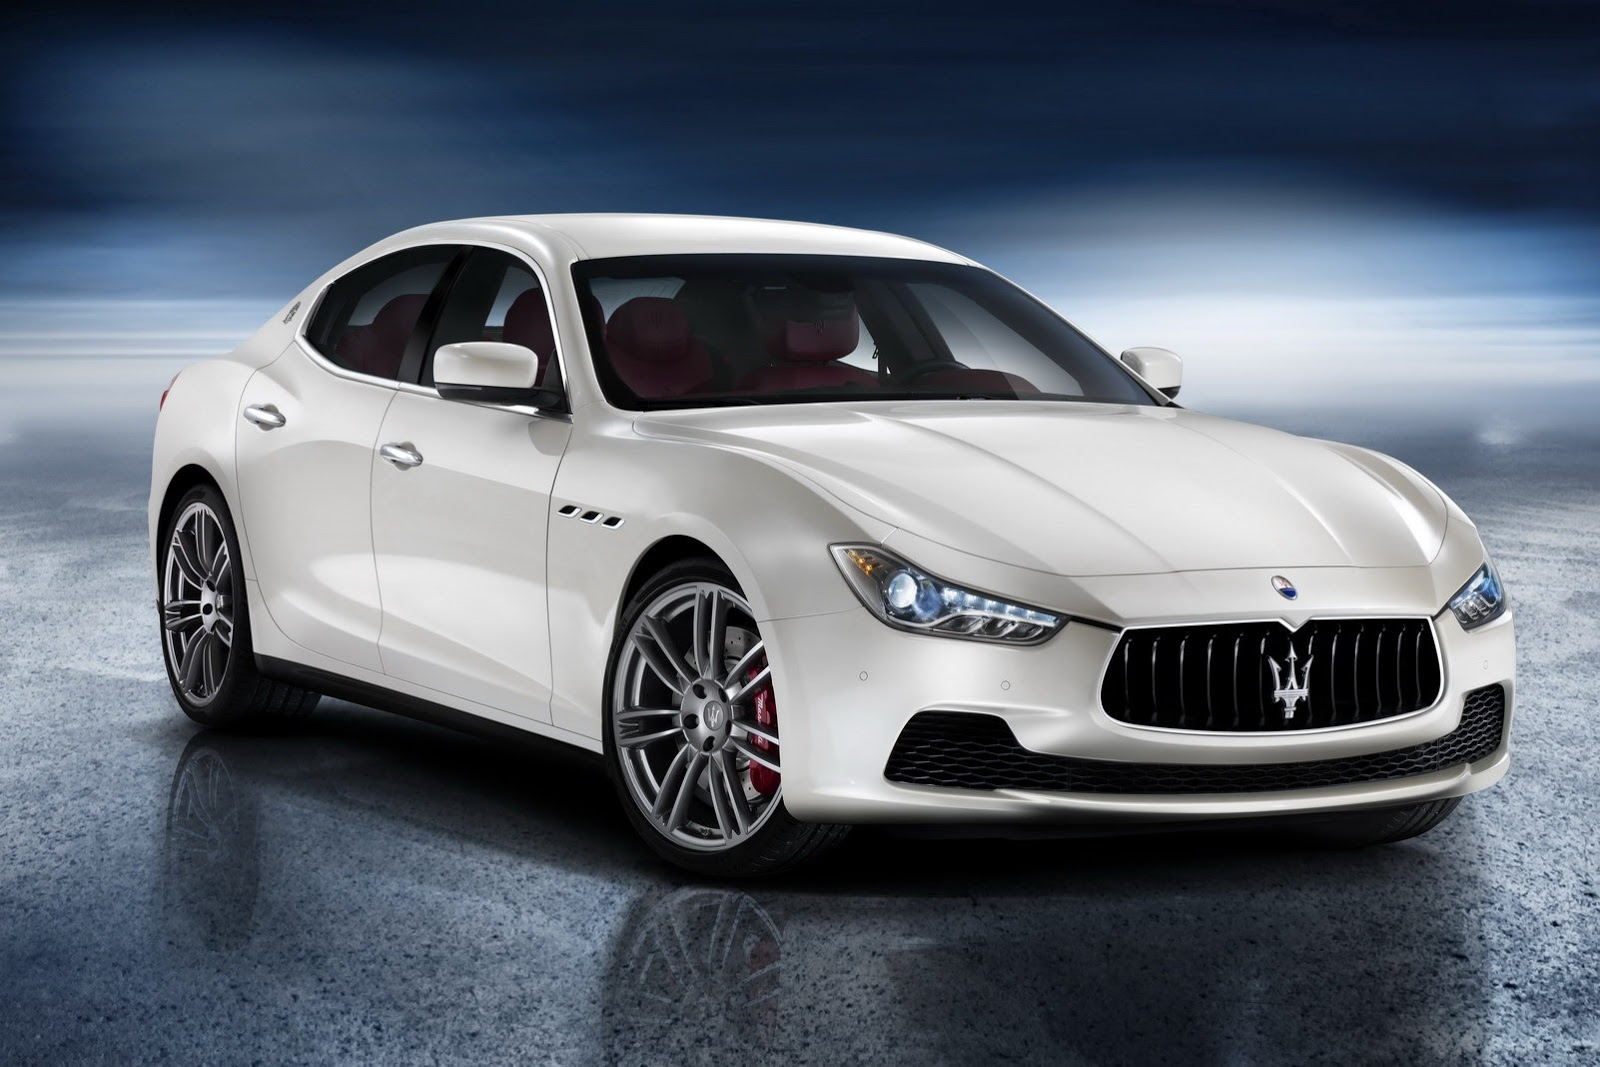 maserati ghibli iii 2013 la berline qui vise les allemandes. Black Bedroom Furniture Sets. Home Design Ideas